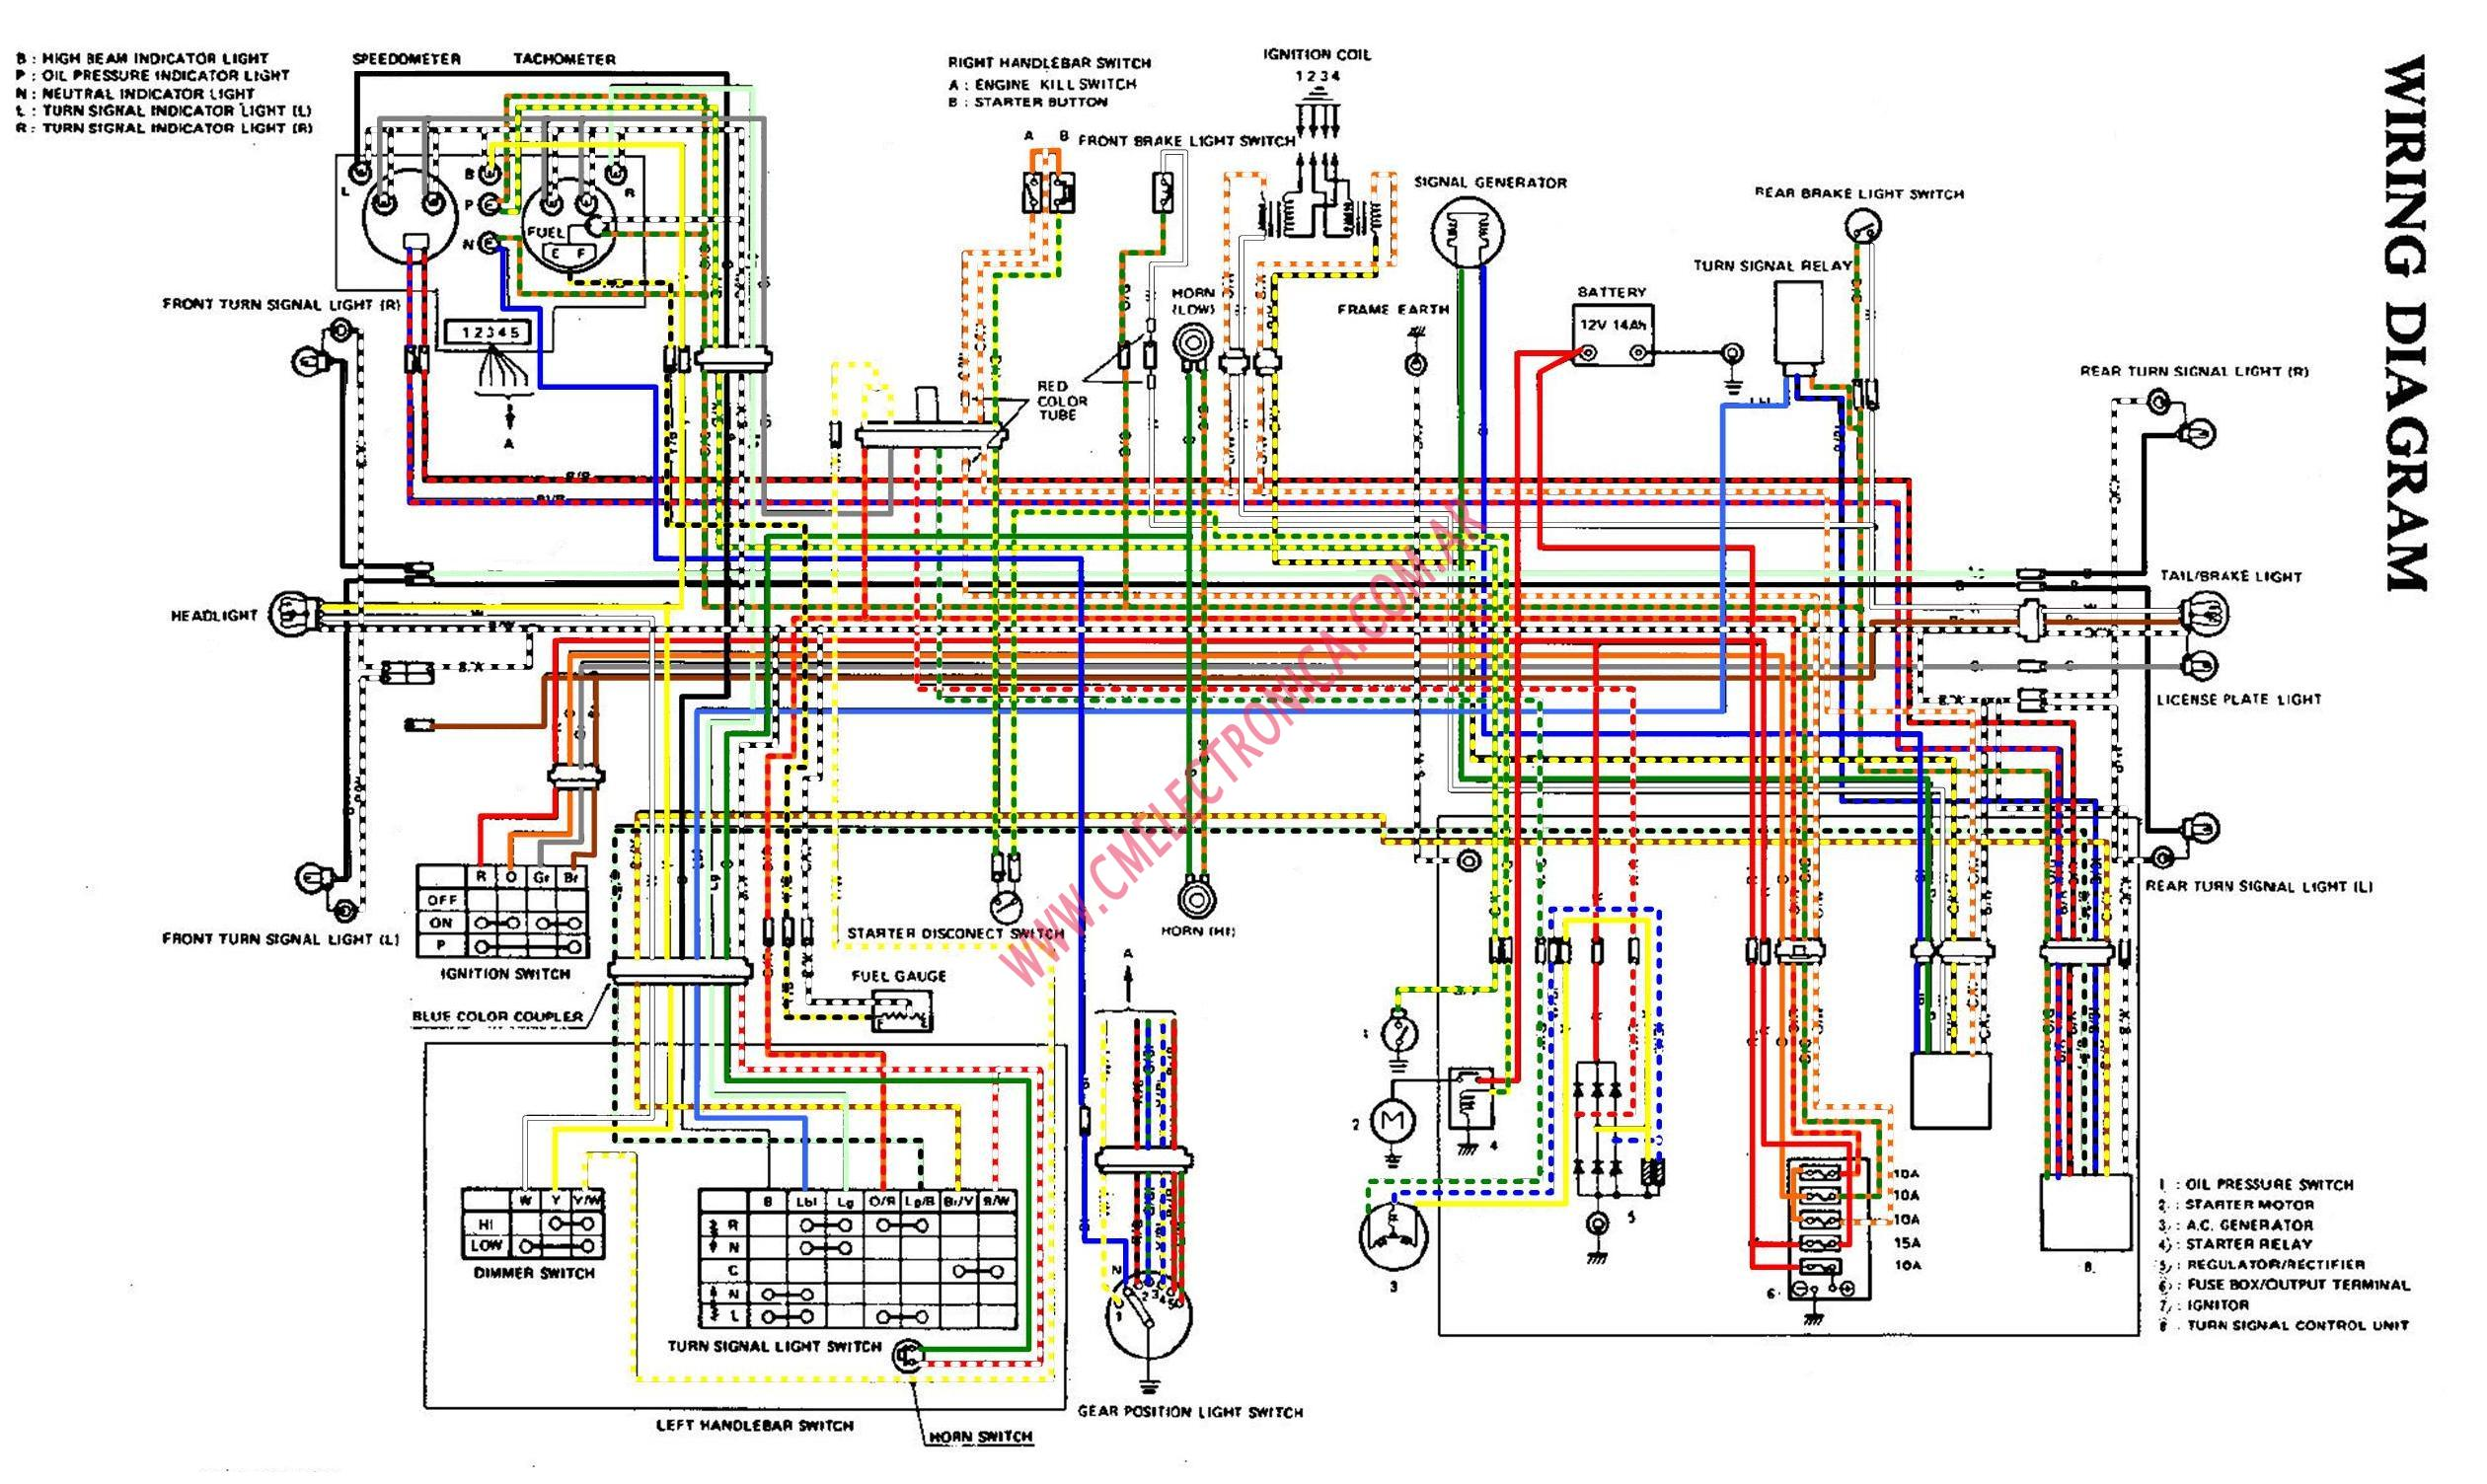 suzuki gs1000 y2k bike wiring diagrams suzuki gsx r motorcycle forums gixxer gs850g wiring diagram at n-0.co